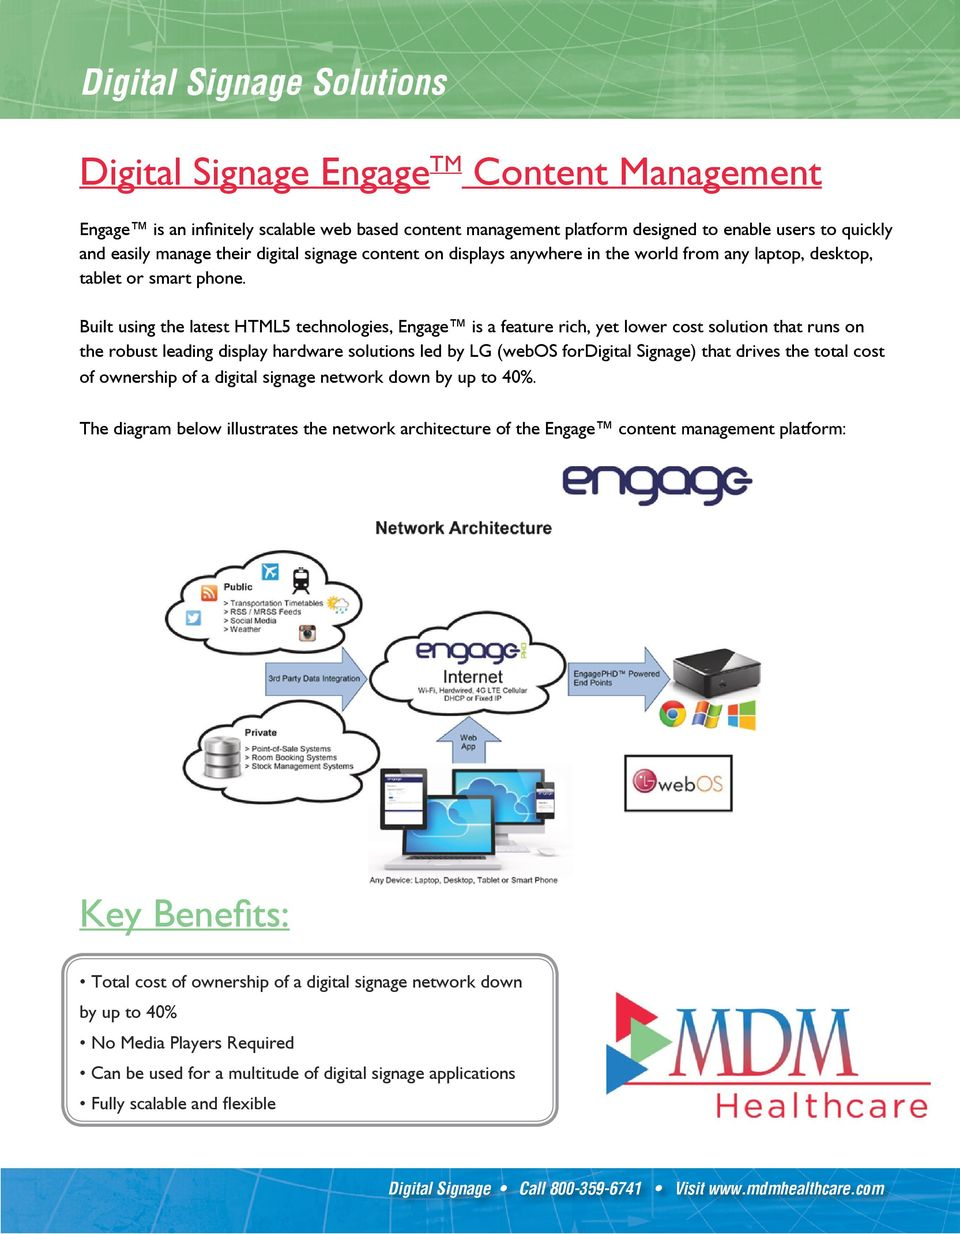 Built using the latest HTML5 technologies, Engage is a feature rich, yet lower cost solution that runs on the robust leading display hardware solutions led by LG (webos fordigital Signage) that